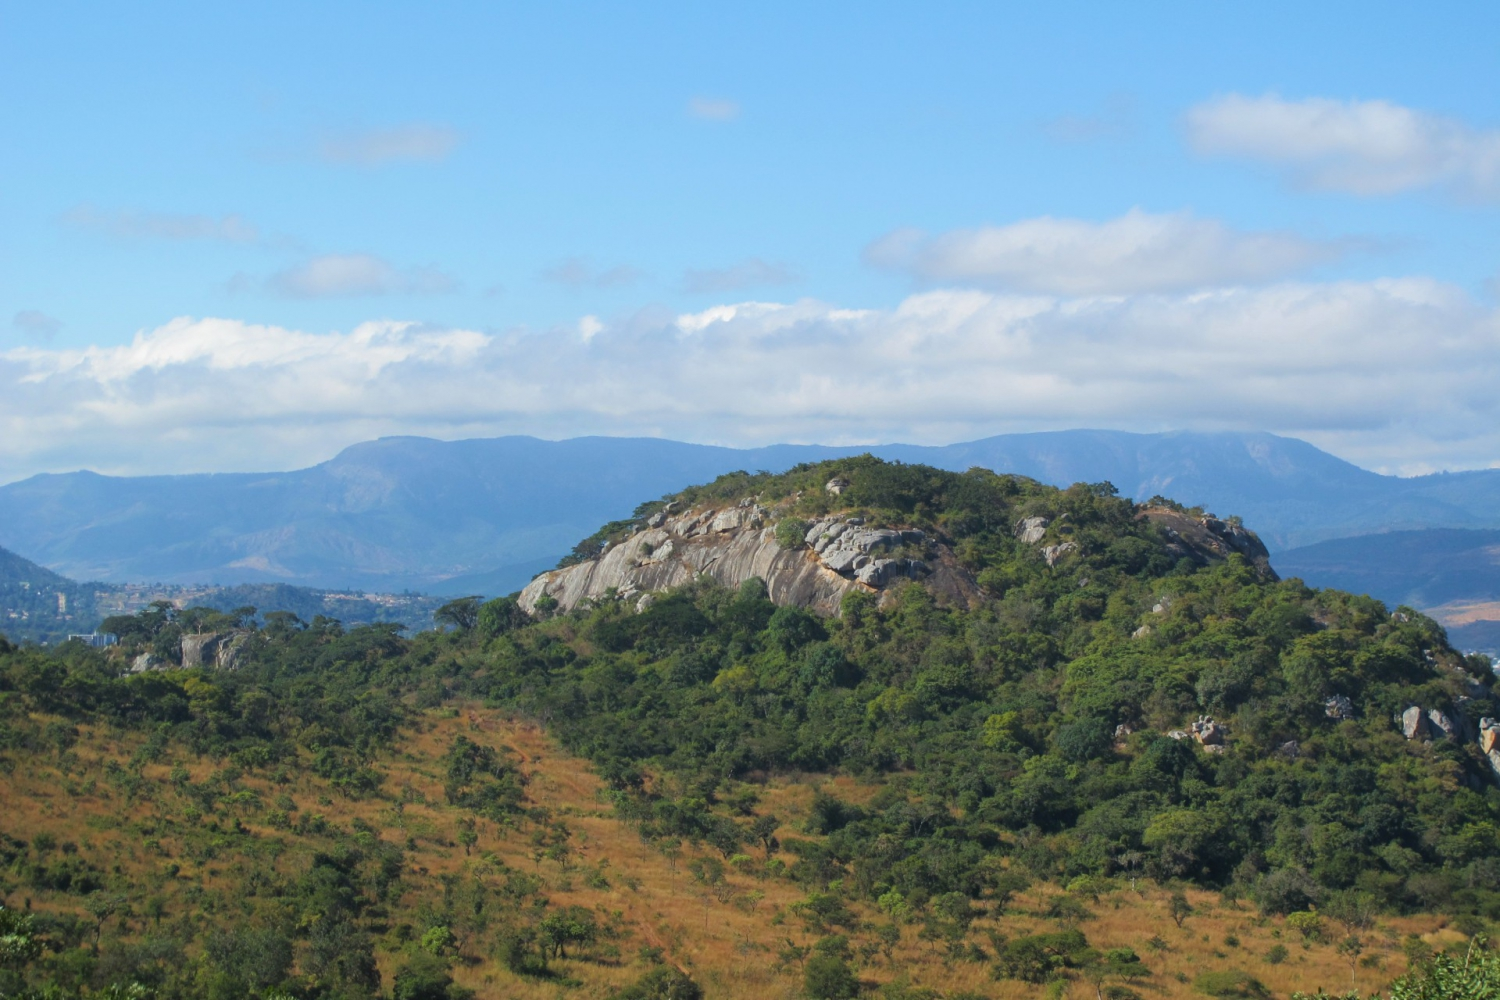 5 Days in the Eastern Highlands - Itinerary